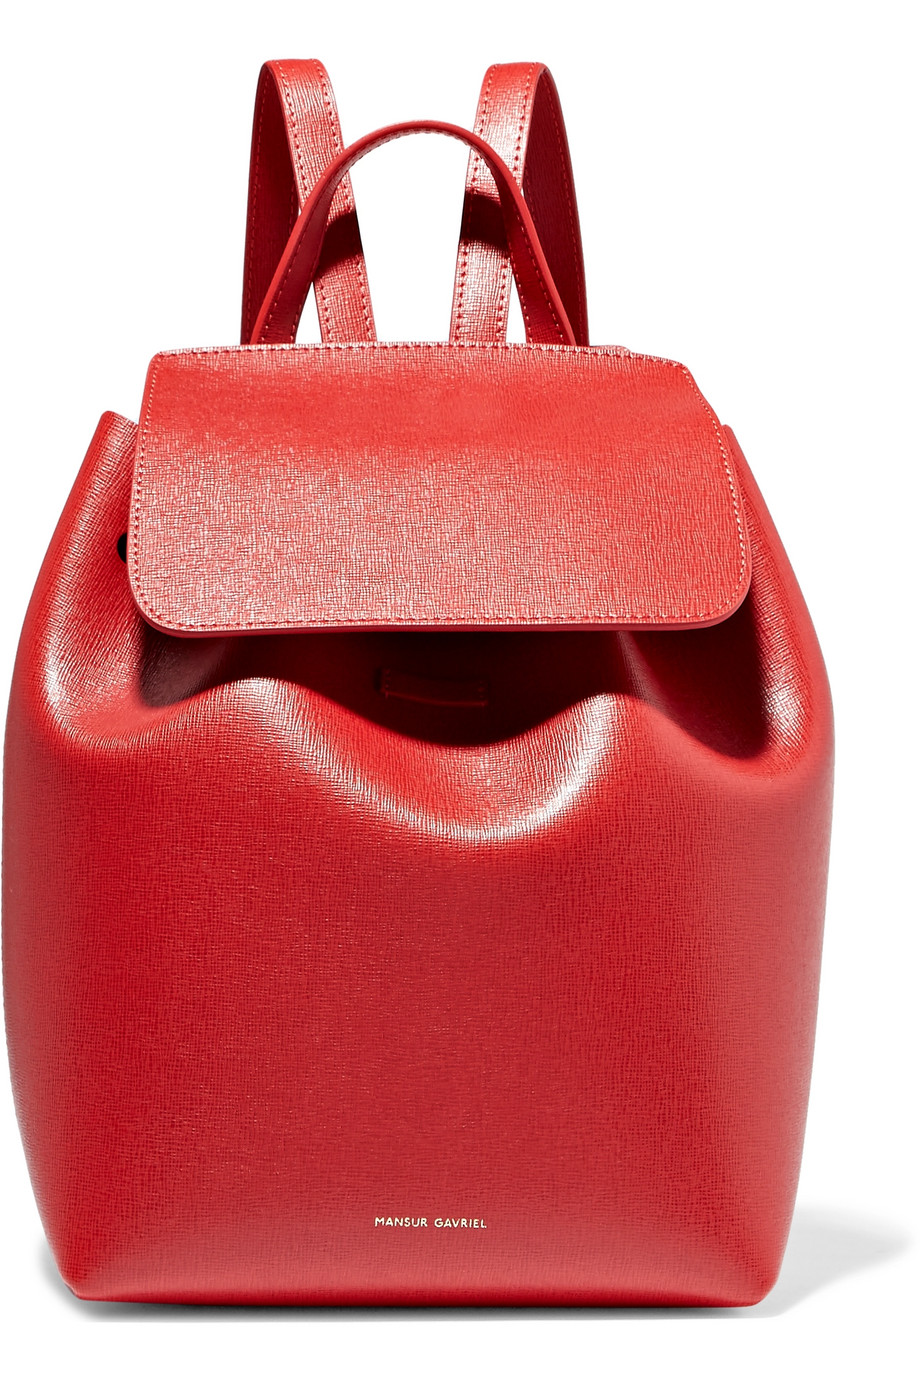 Mini textured-leather backpack by Mansur Gabriel, €695 at net-a-porter.com